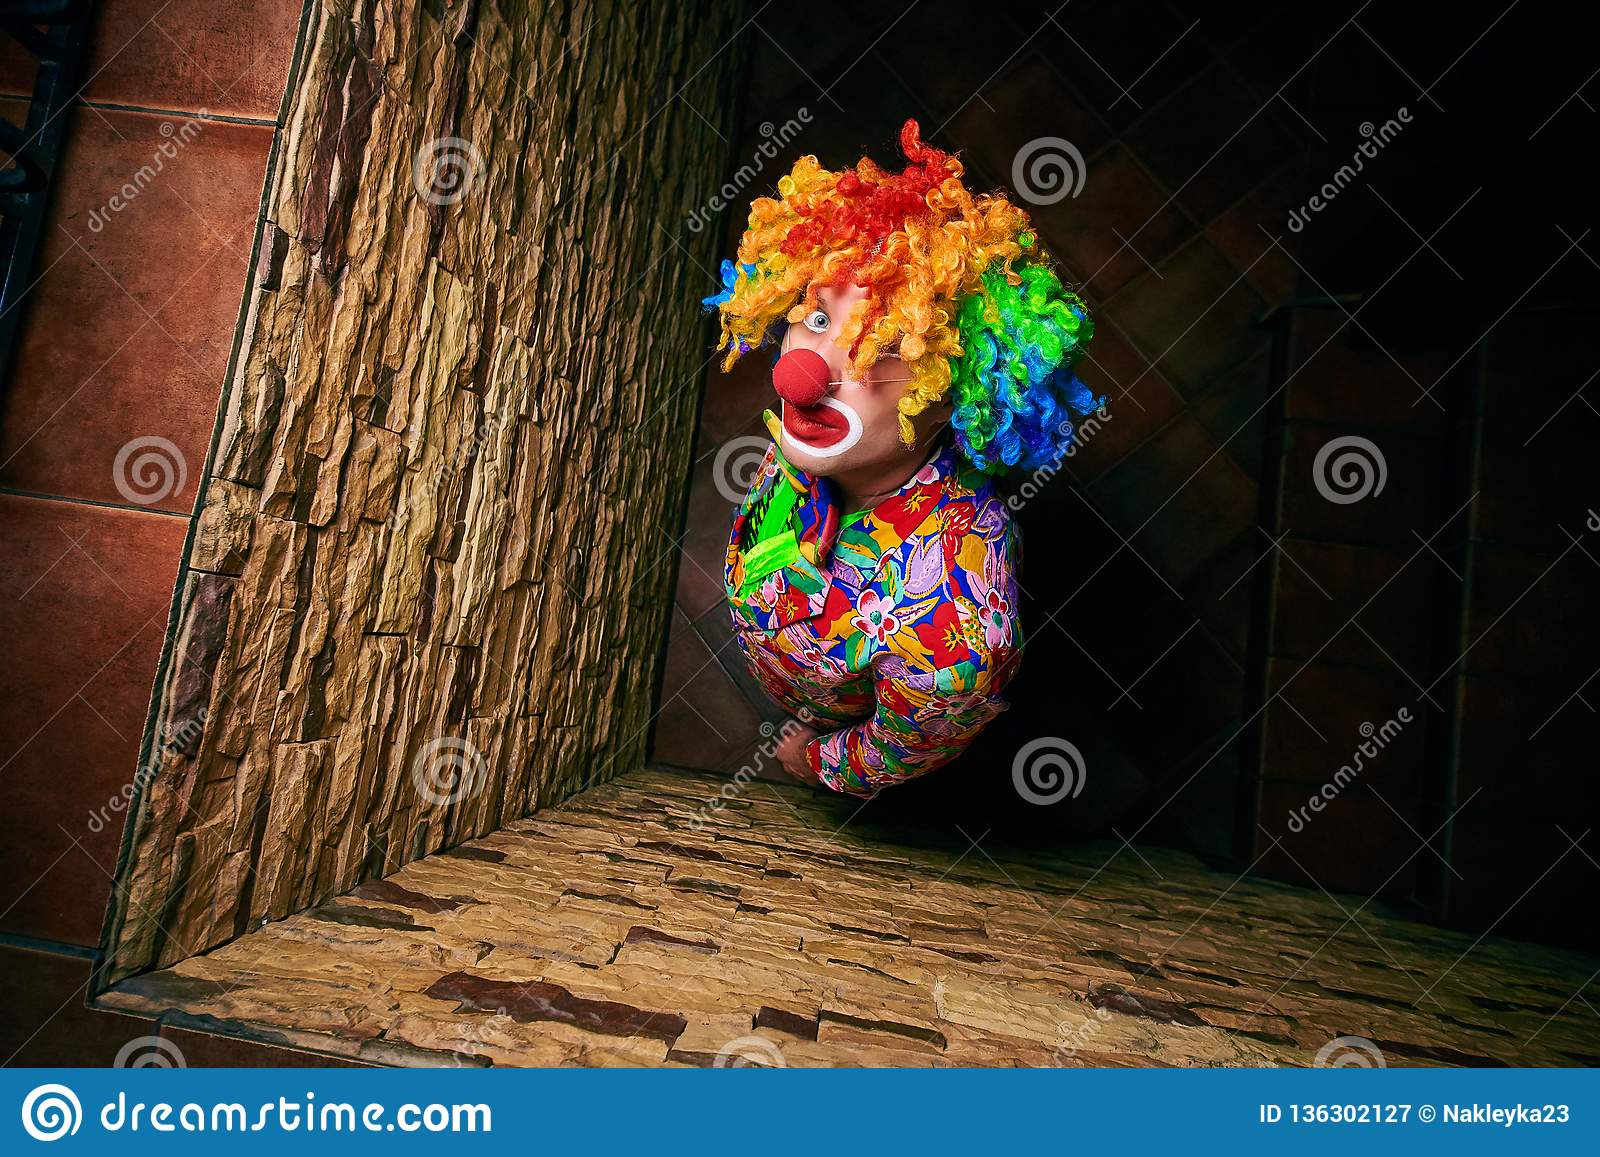 Handsome man in a clown costume looks up